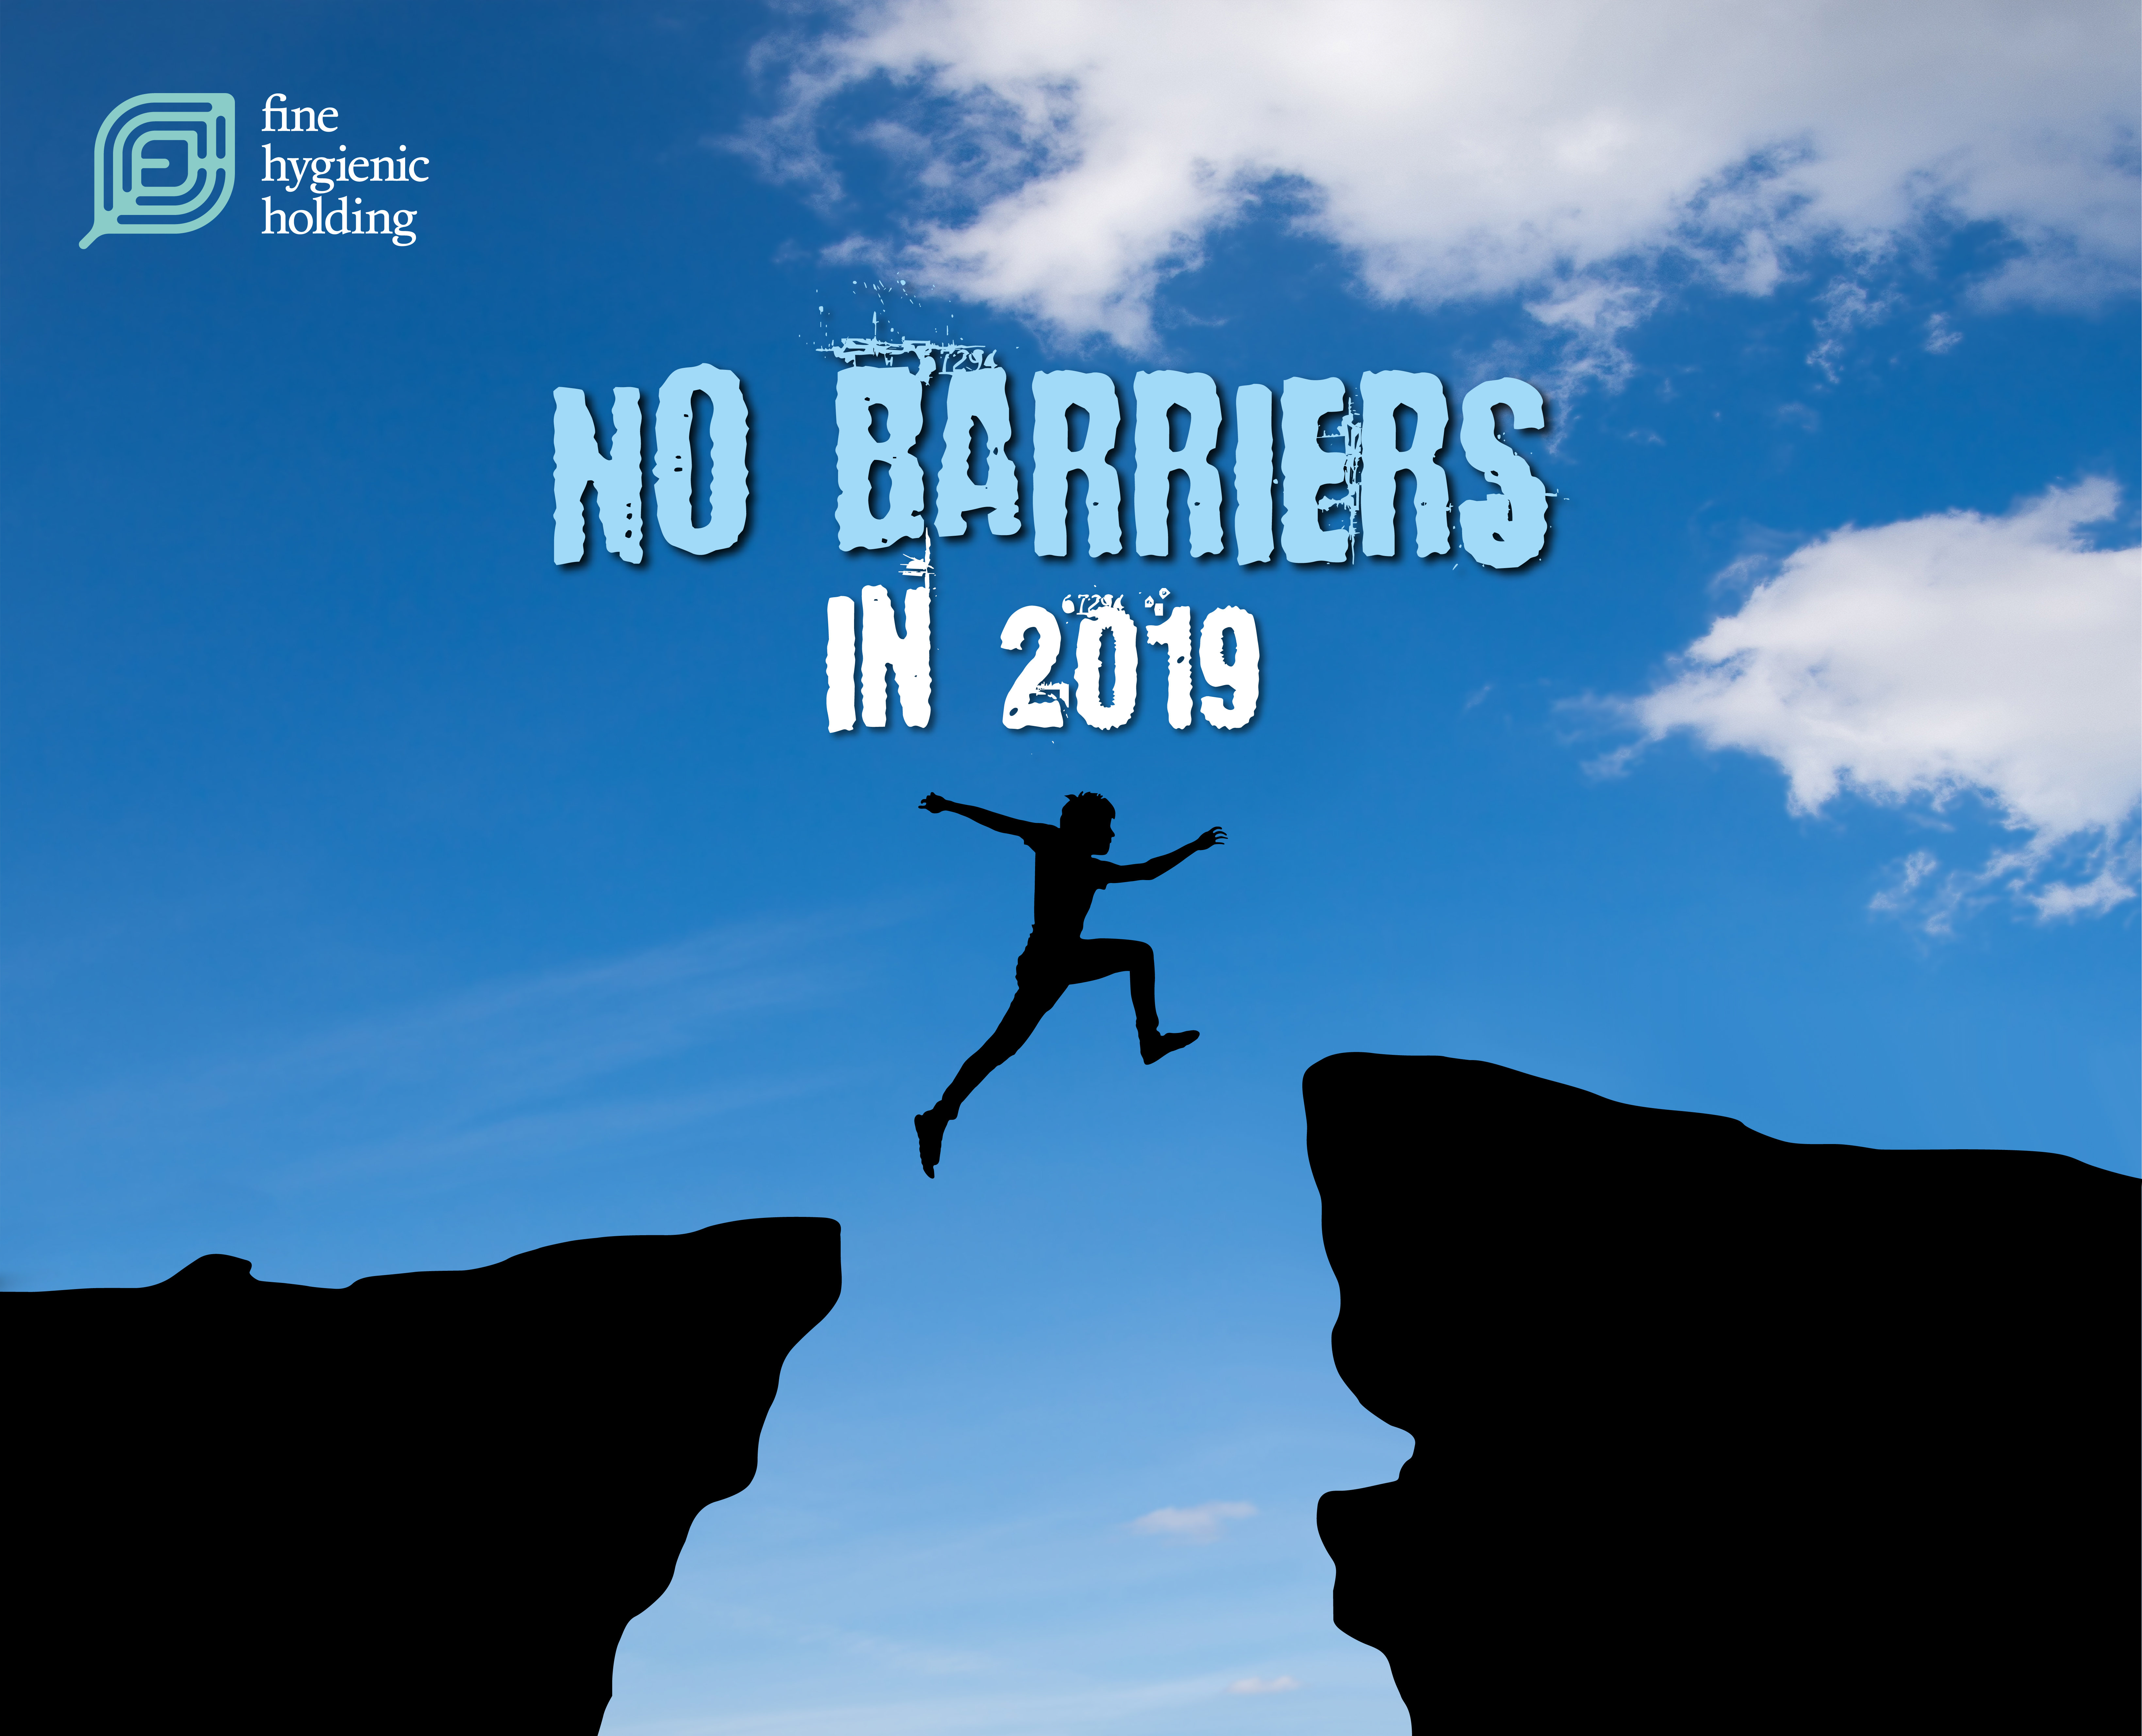 No Barriers in 2019